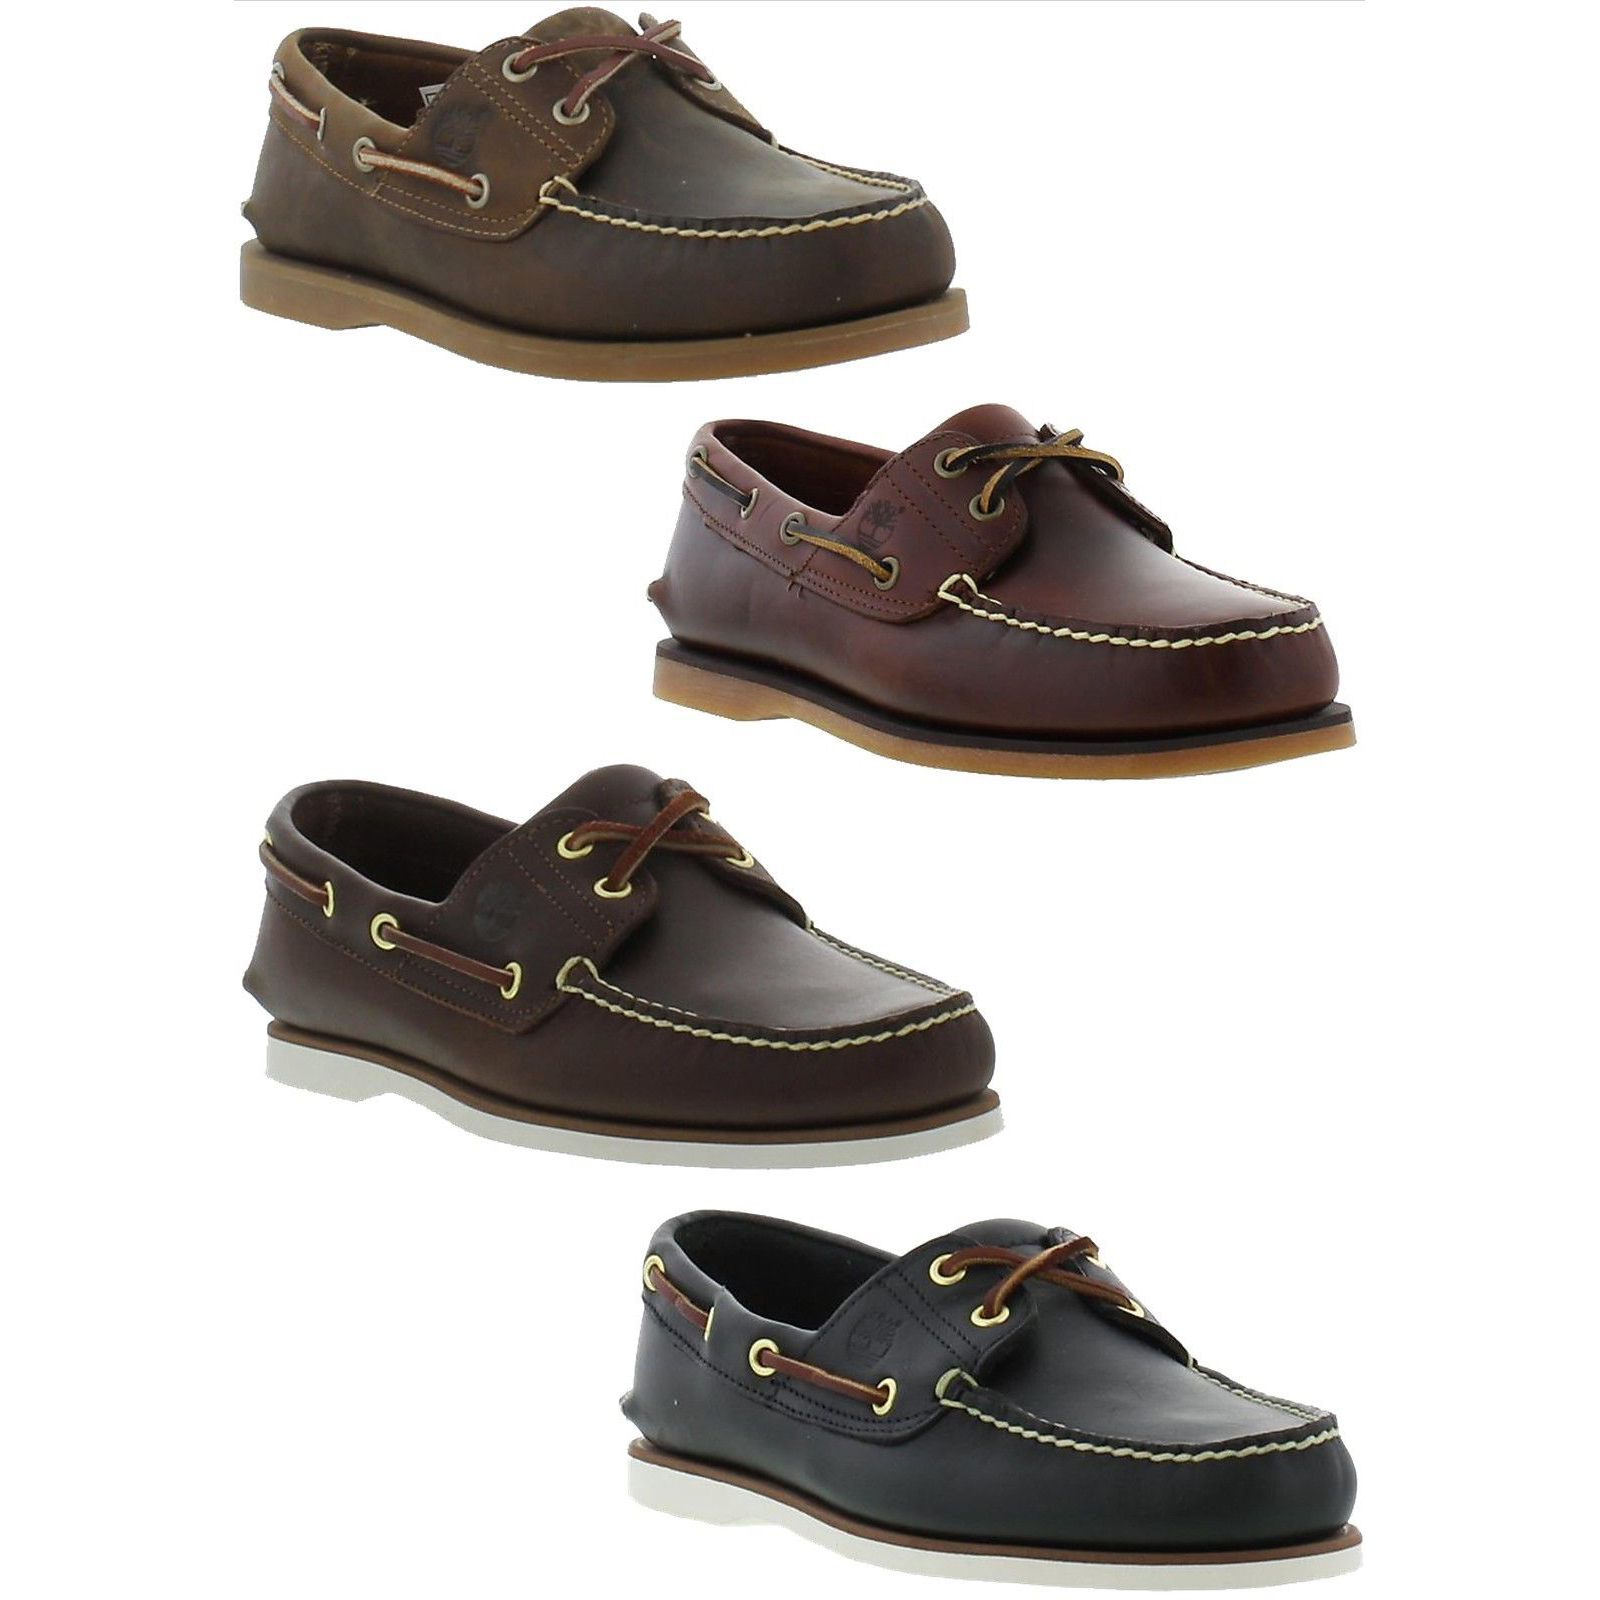 Timberland Classic 2 Eye Boat Shoe Mens Leather Deck Shoes